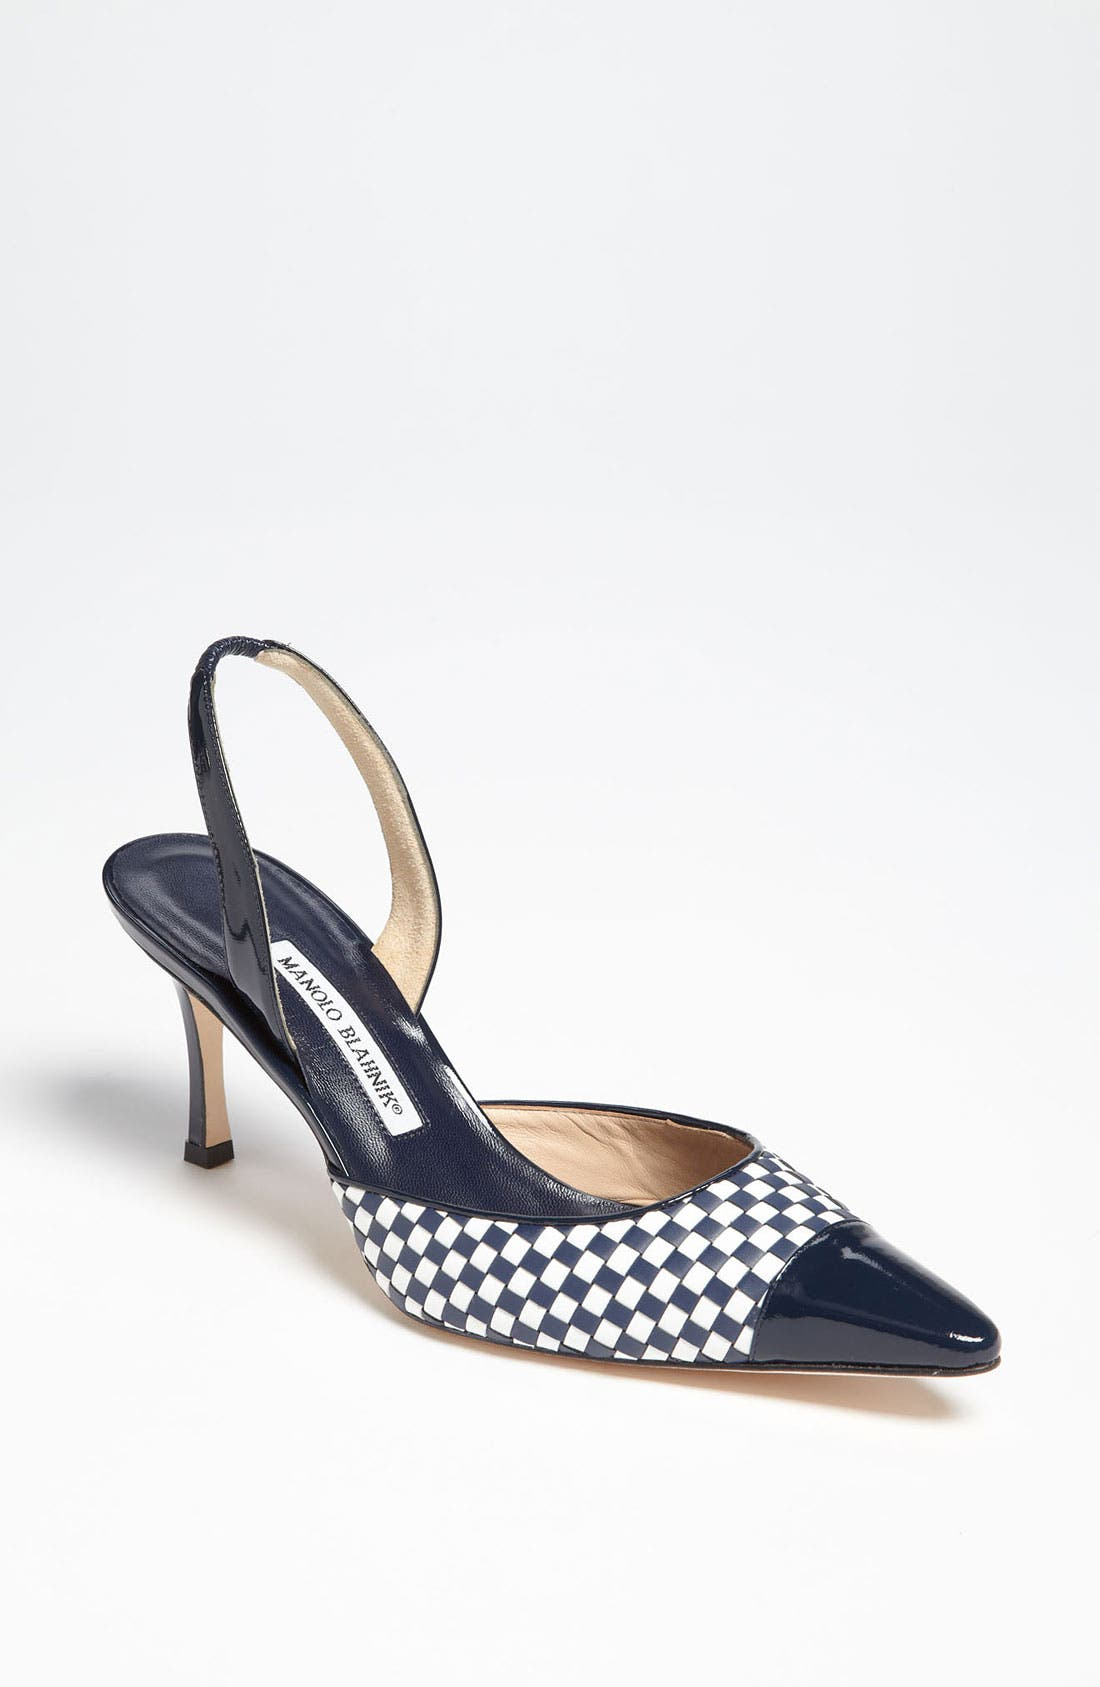 Alternate Image 1 Selected - Manolo Blahnik 'Carolyne' Pump